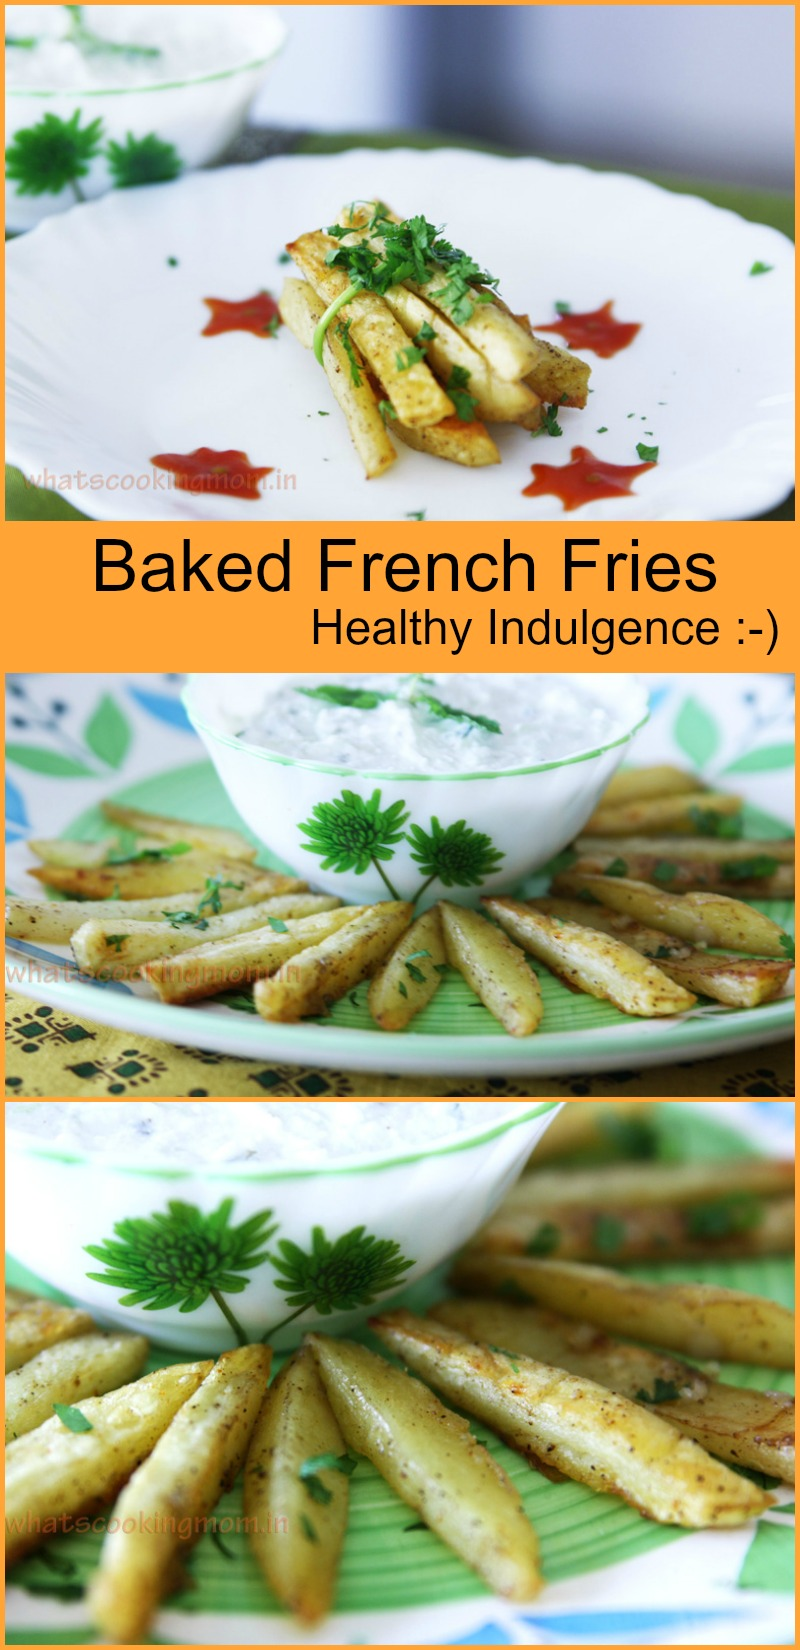 Oven Baked French Fries - healthy Indulgence, snack, appetizers, vegetarian, healthy